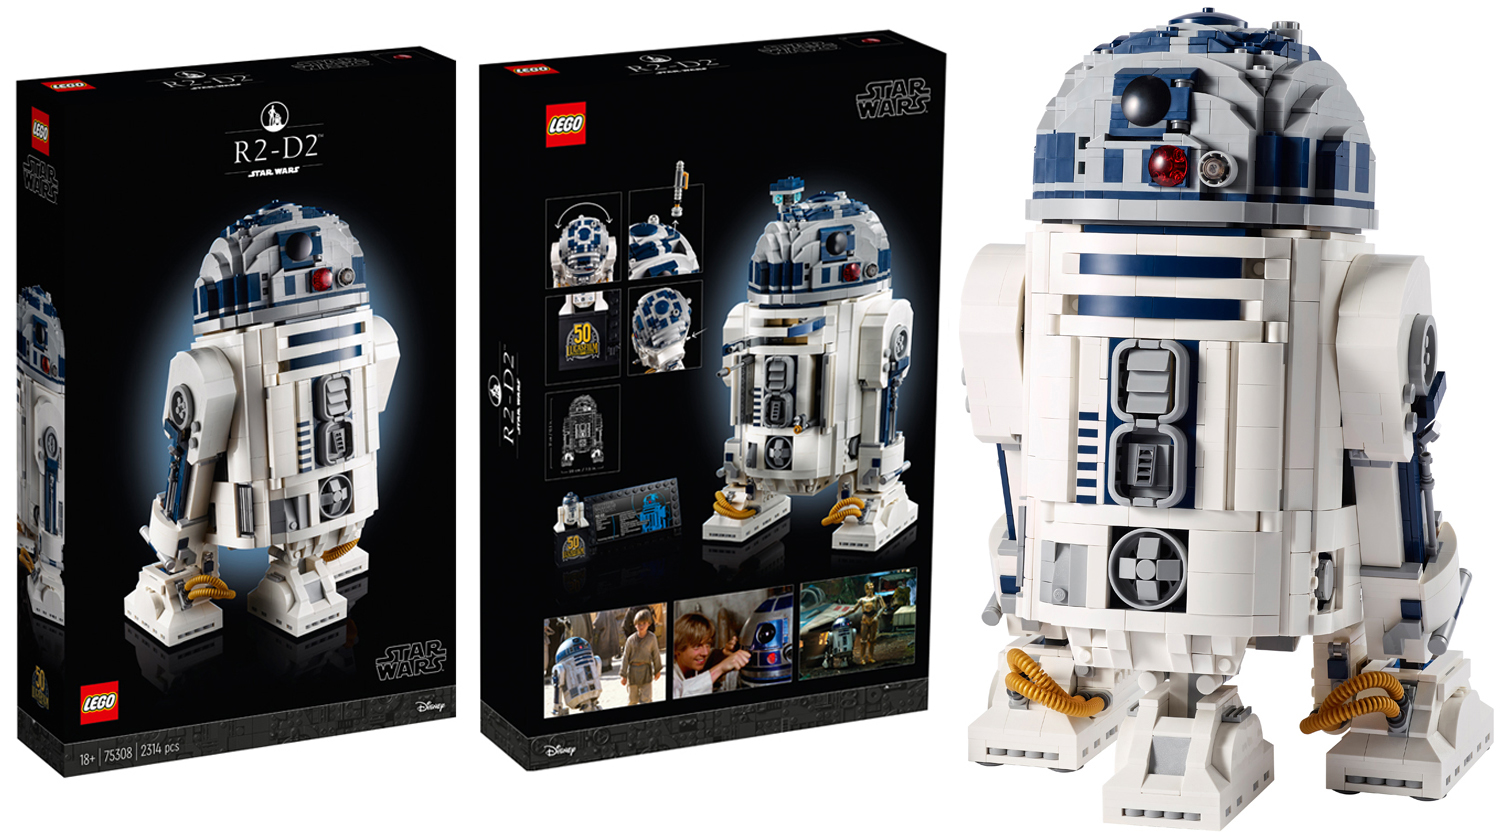 Lego May 2022 Calendar.Lego Unveils Its Biggest And Best R2 D2 Set In Time For May The 4th Space